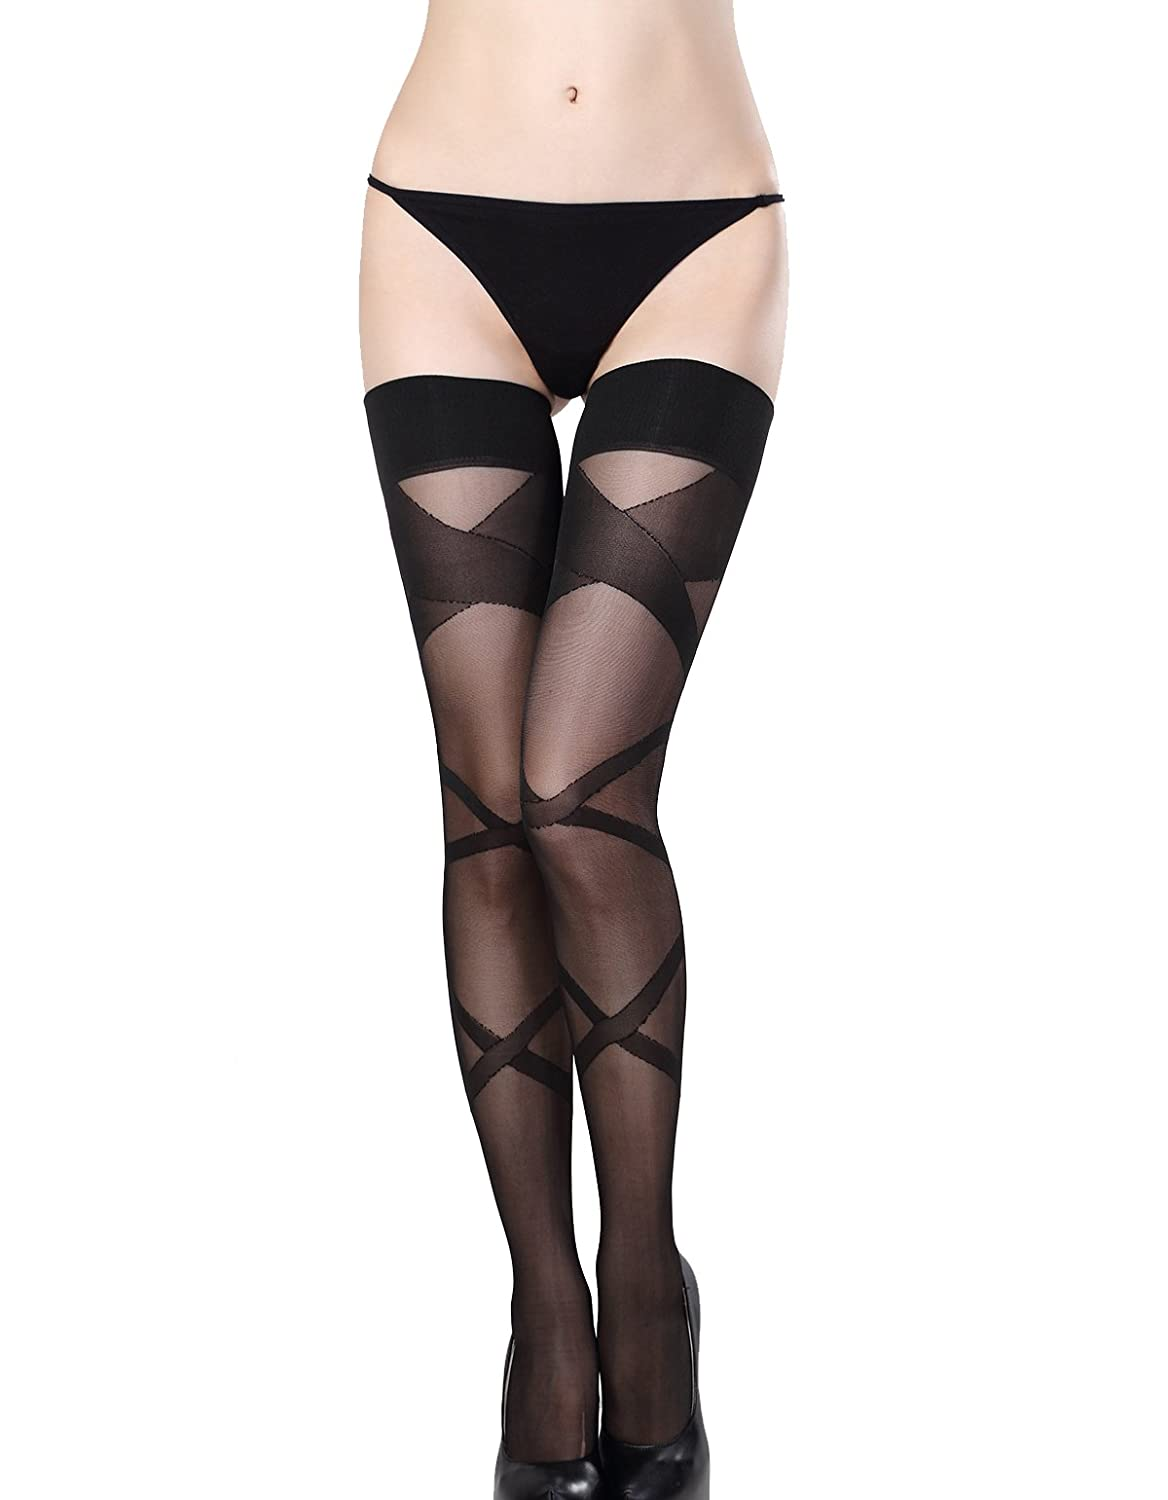 ThreeH Black Sheer Tights Thigh-High Stockings Low Pantyhose for Women (NO G-String) H-K30101